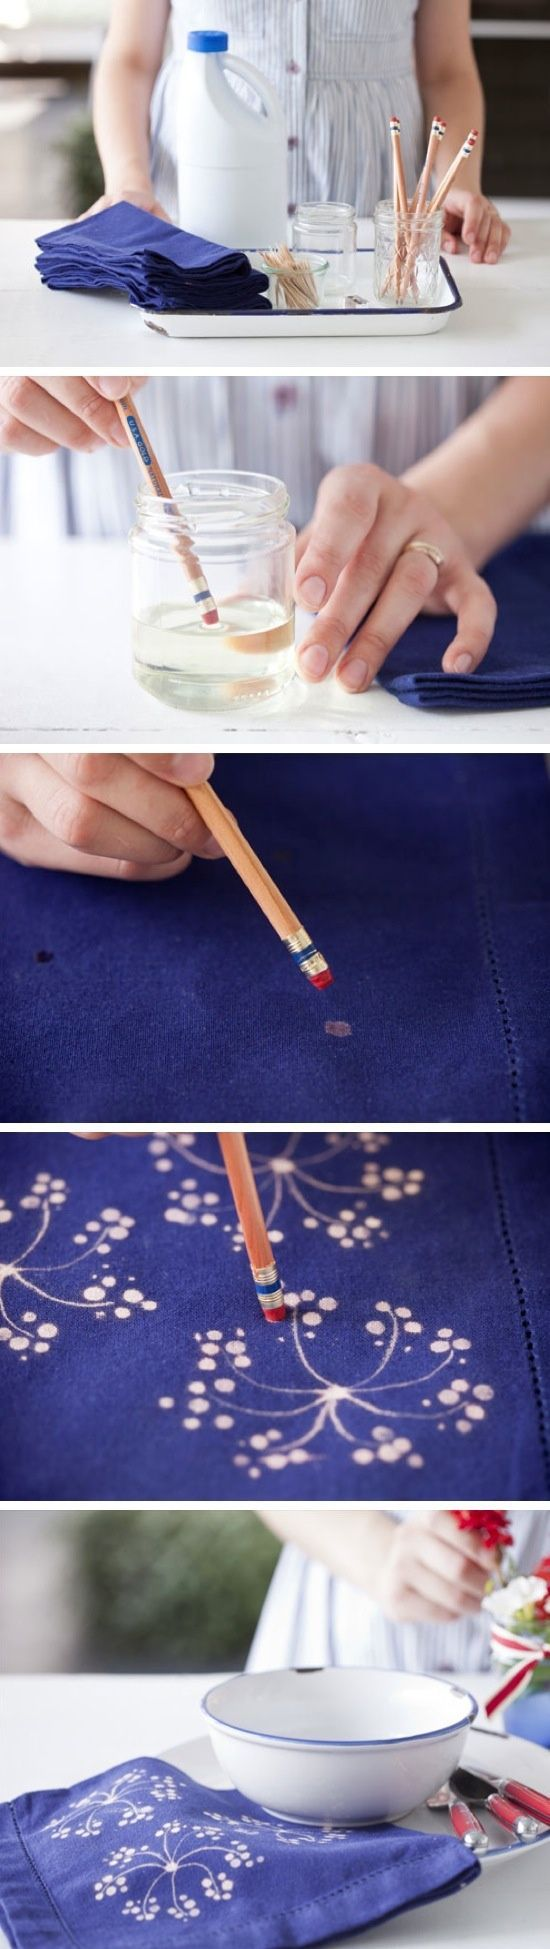 Such a great idea! Make your own designs with bleach.